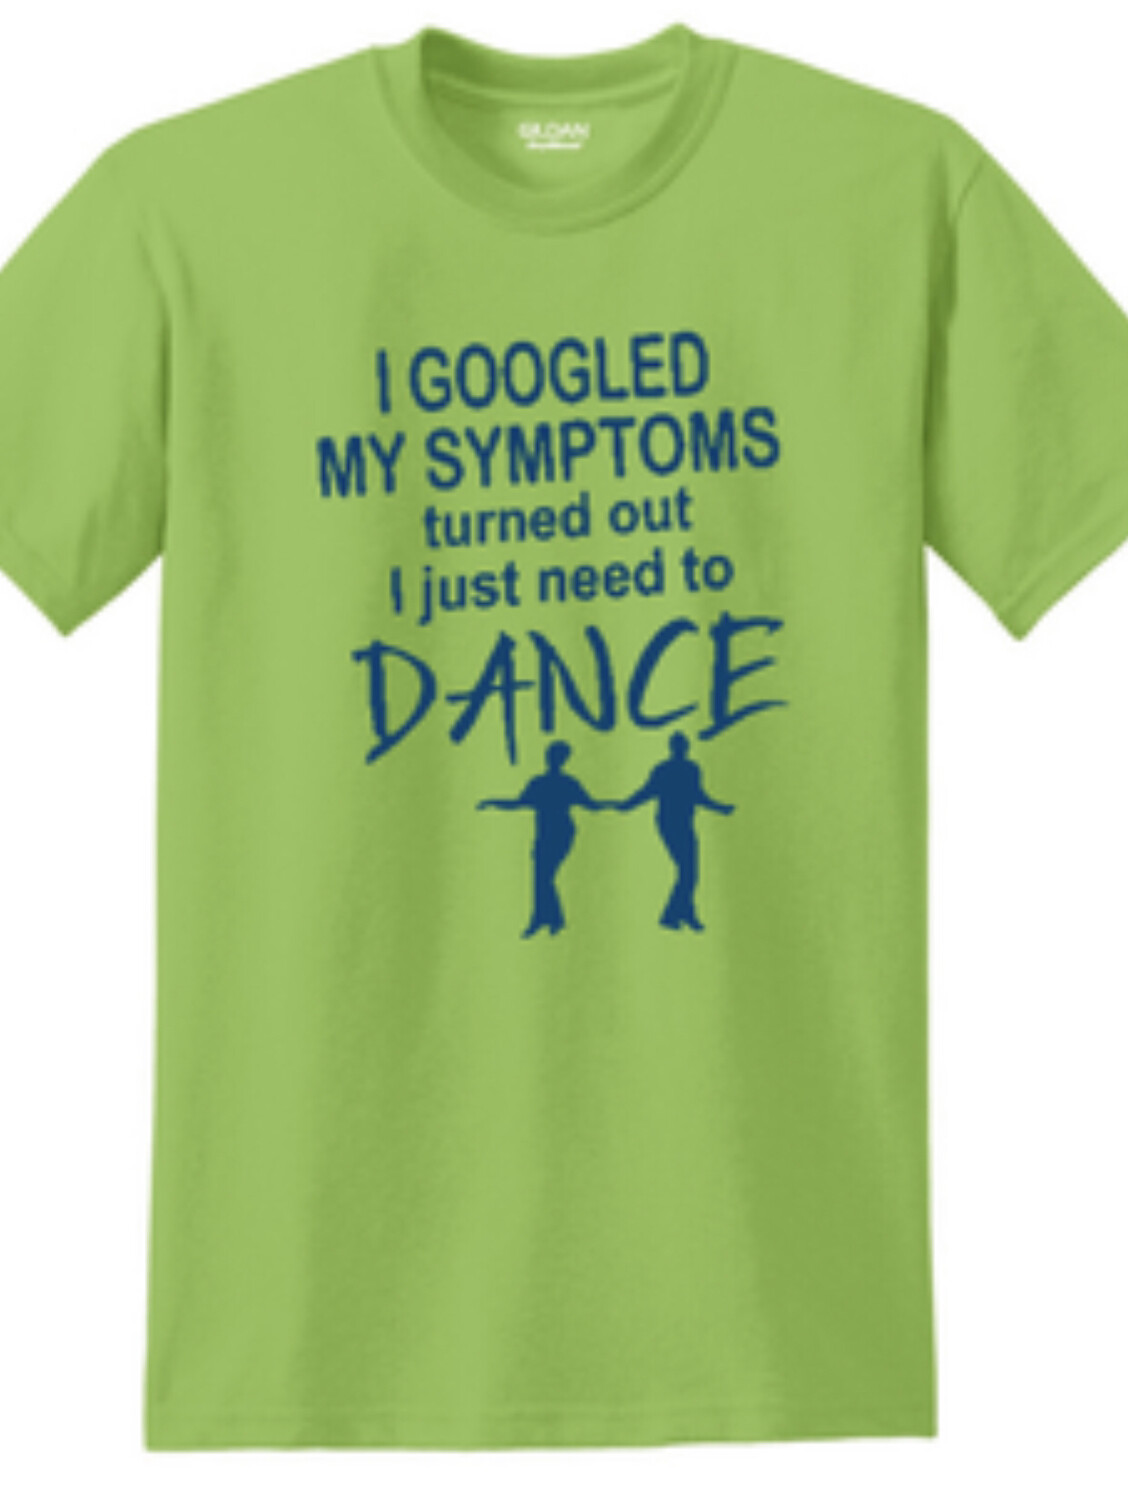 I Just Need to Dance tee to benefit our musicians